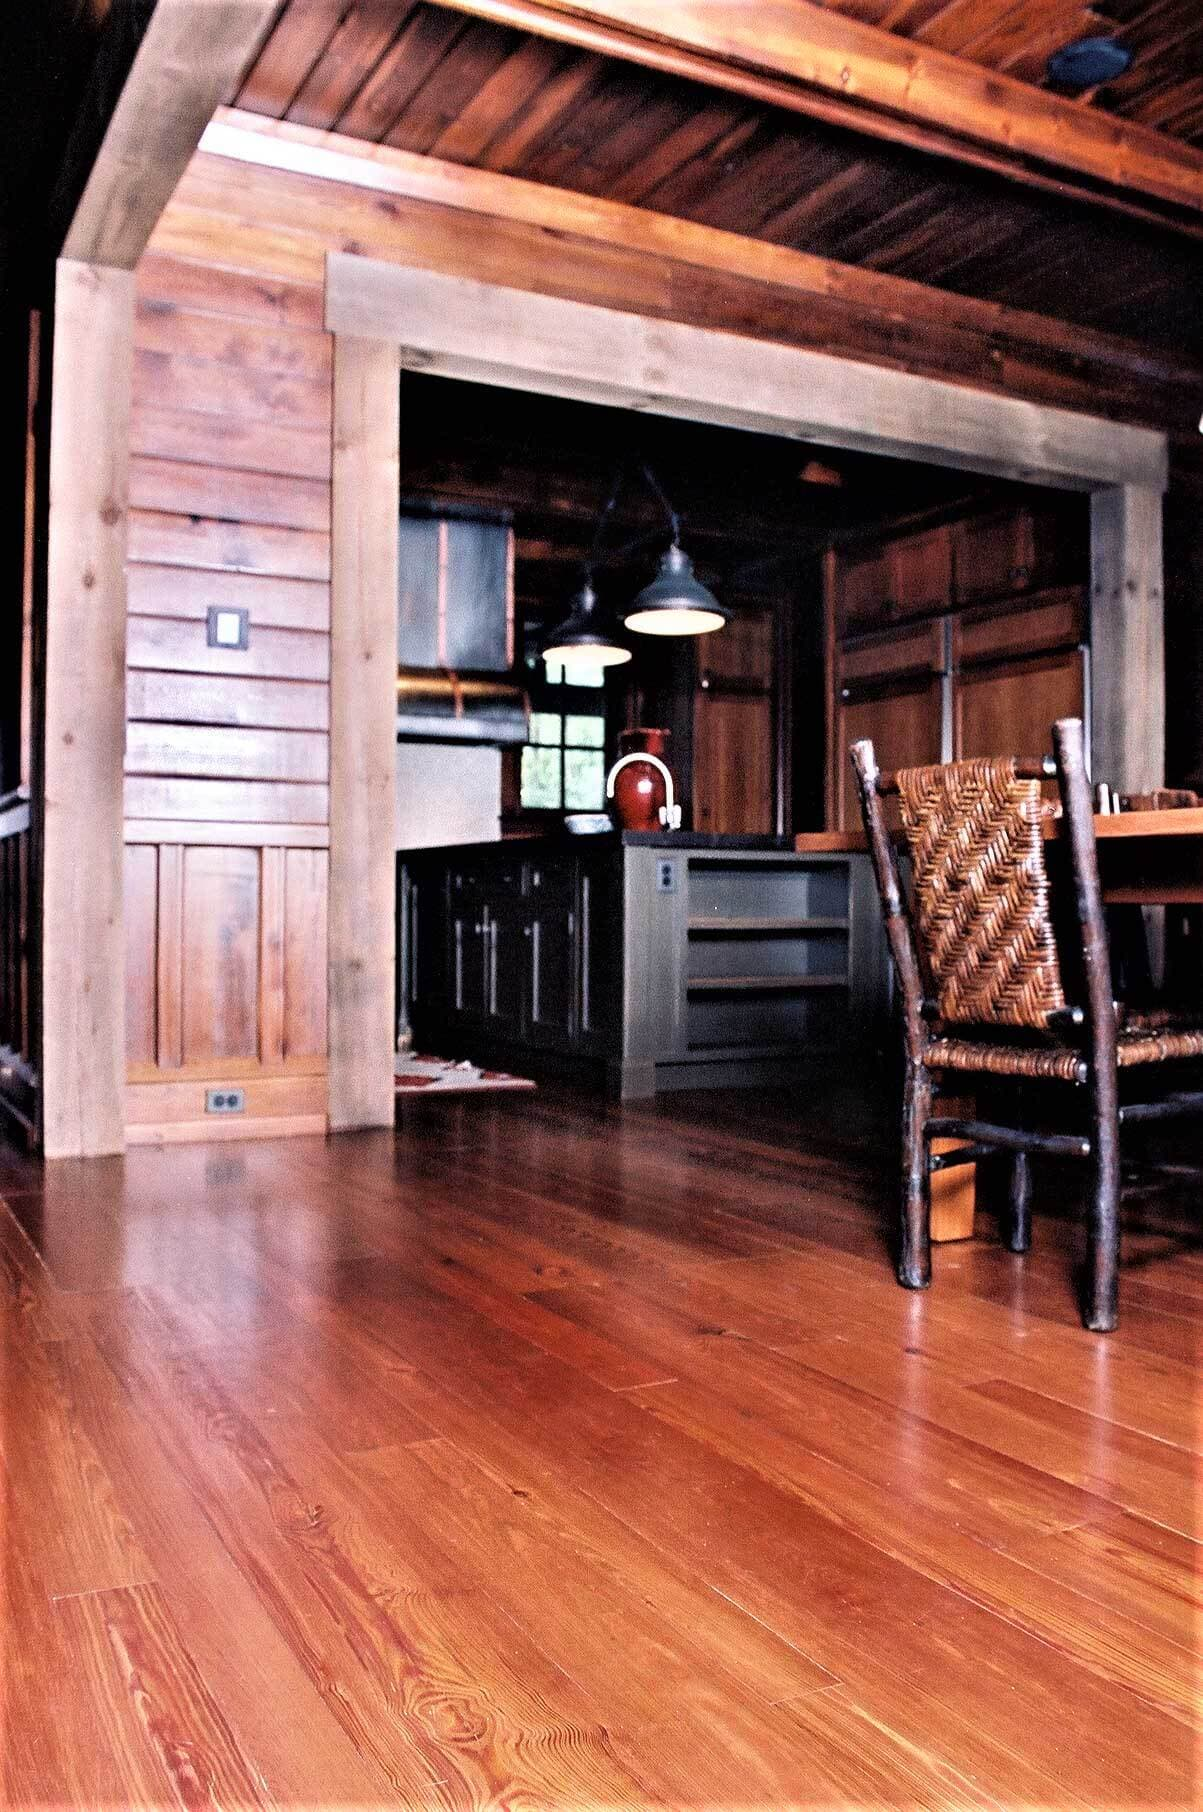 an Antique heartpine floor and a black cane chair in lake toxaway, nc